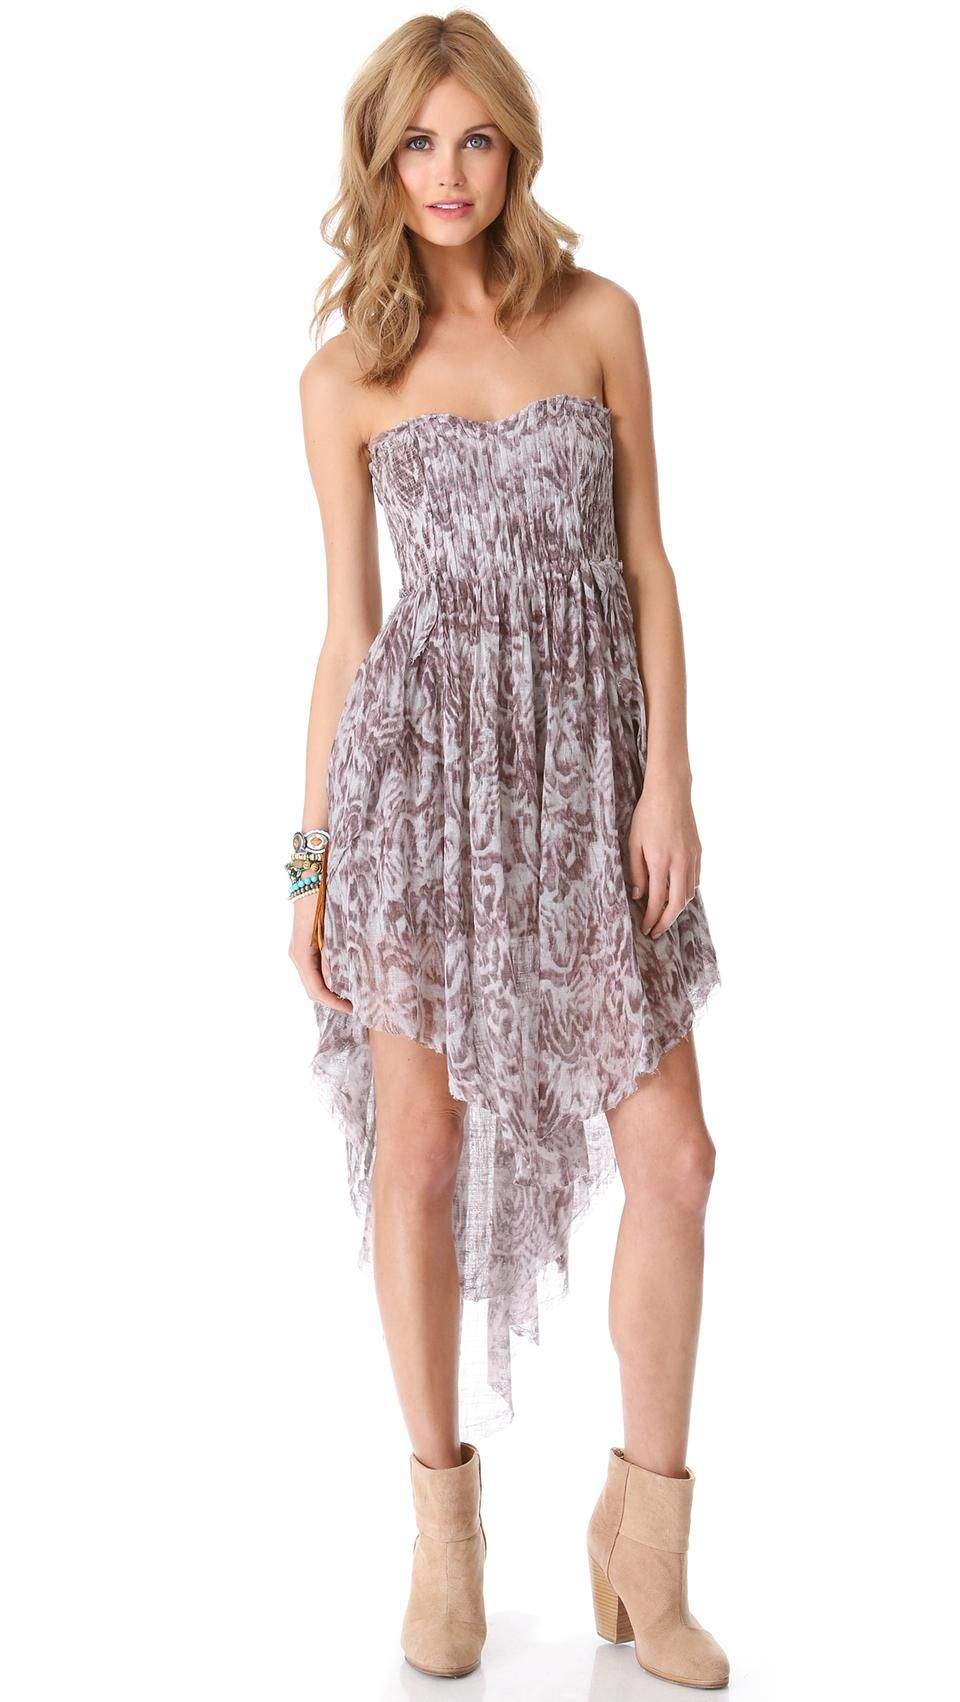 Free People Summer Daze Tube Dress I Have This Dress And I Love It It Was Perfect For Puerto Rico Tube Dress Pretty Mini Dresses Short Dresses Casual [ 1702 x 960 Pixel ]